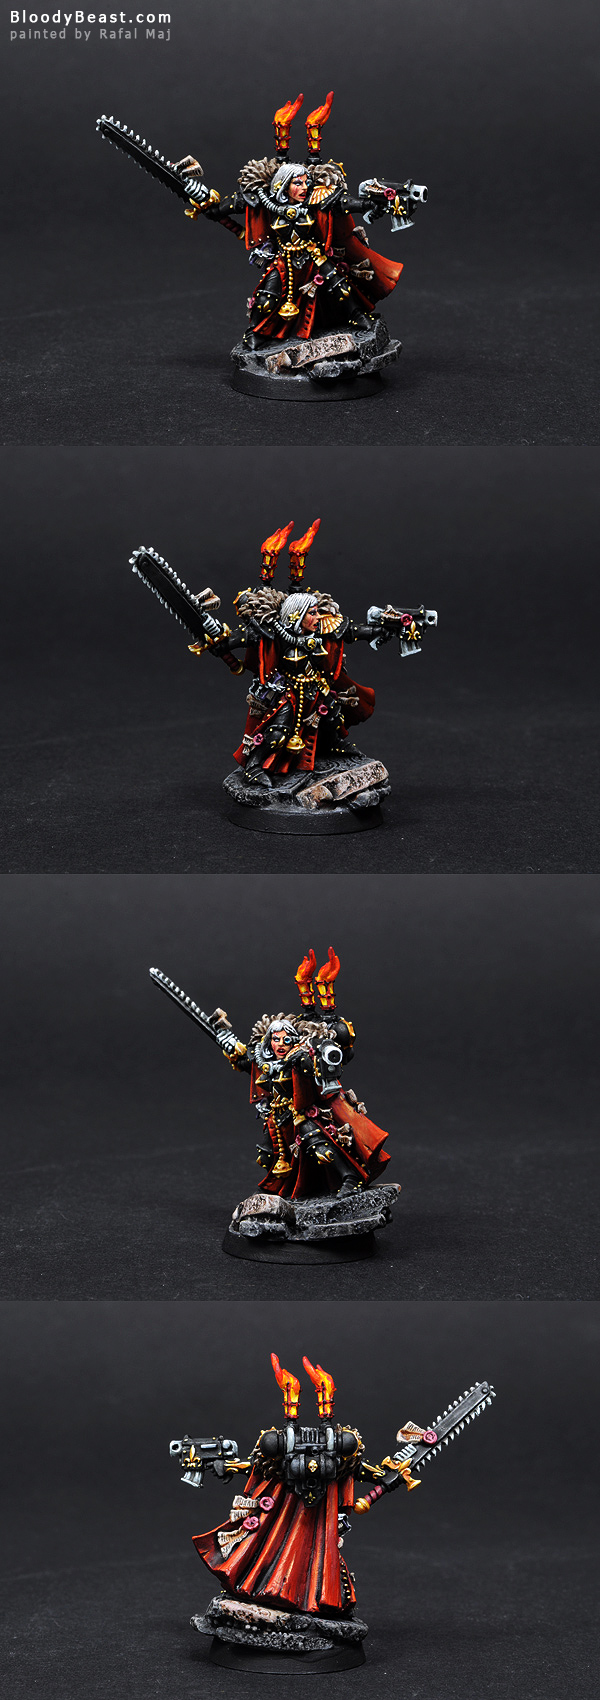 Sisters of Battle Canoness painted by Rafal Maj (BloodyBeast.com)